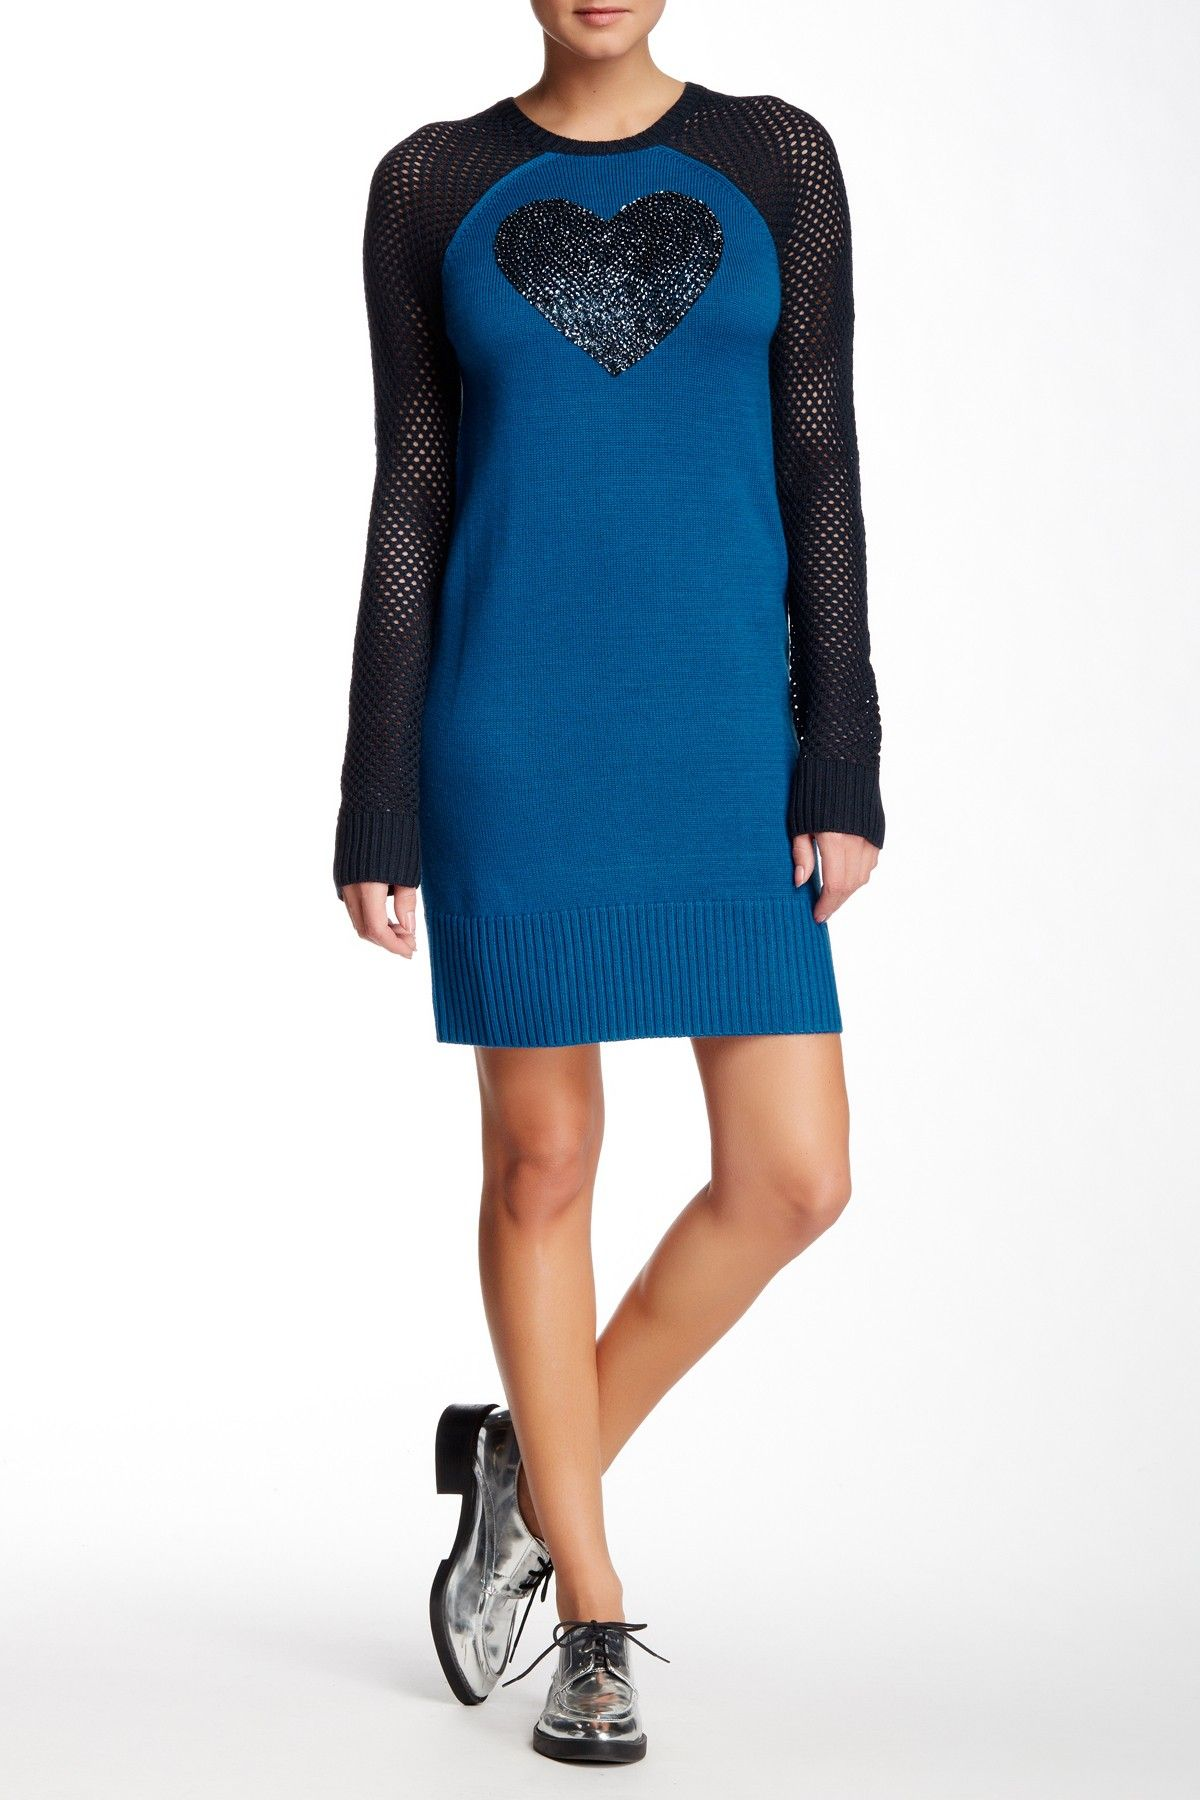 LOVE Moschino | Abito in Maglia Wool Blend Sweater Dress | Nordstrom Rack